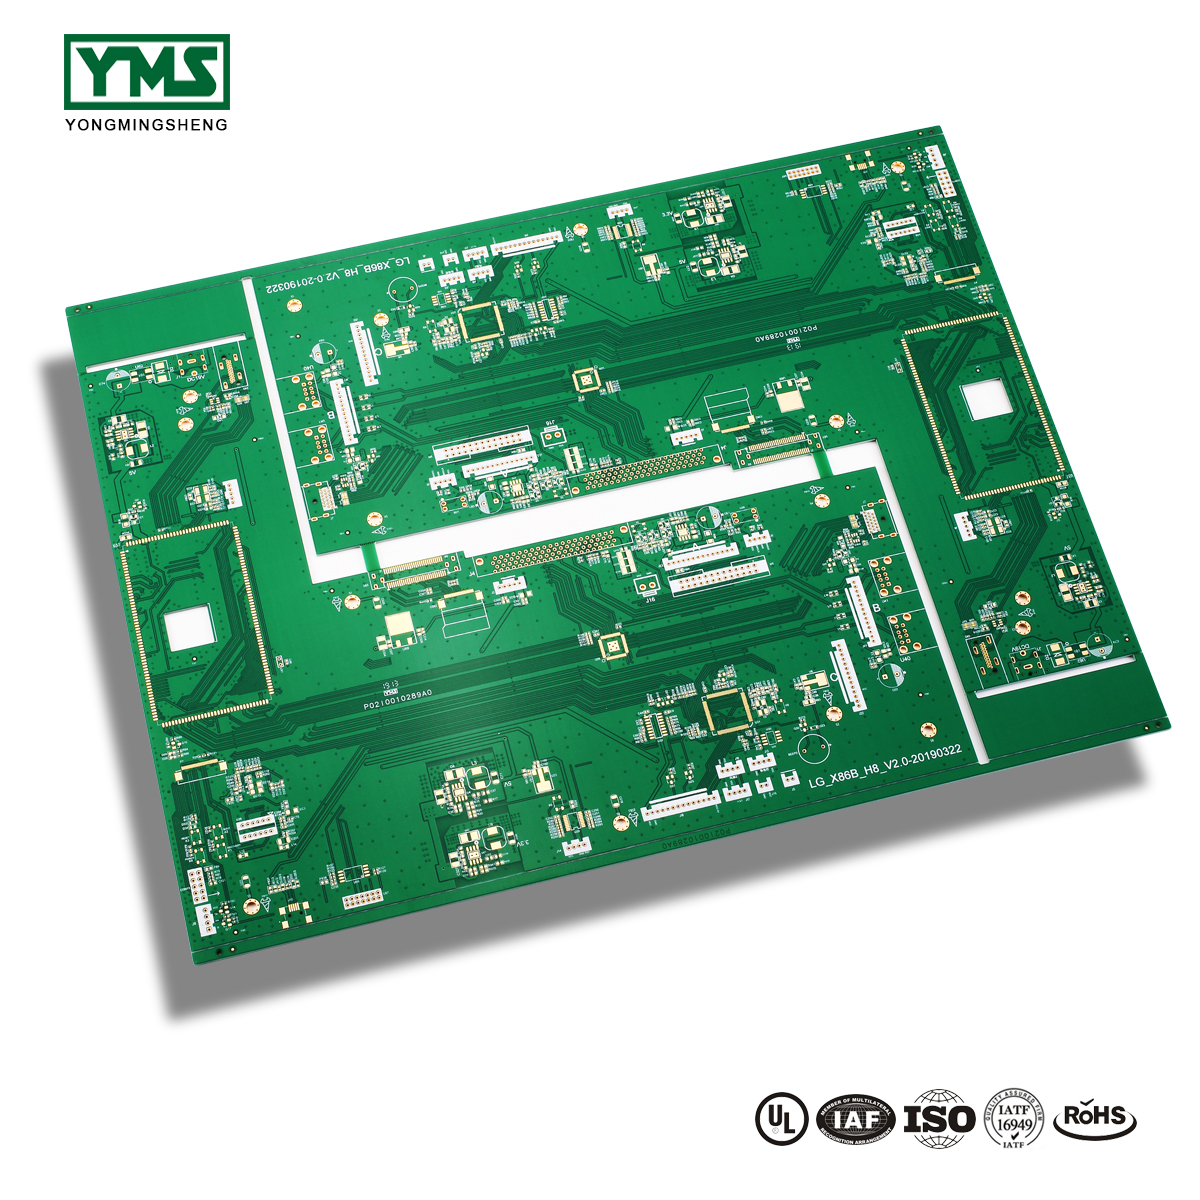 One of Hottest for Bendable Aluminum Pcb -